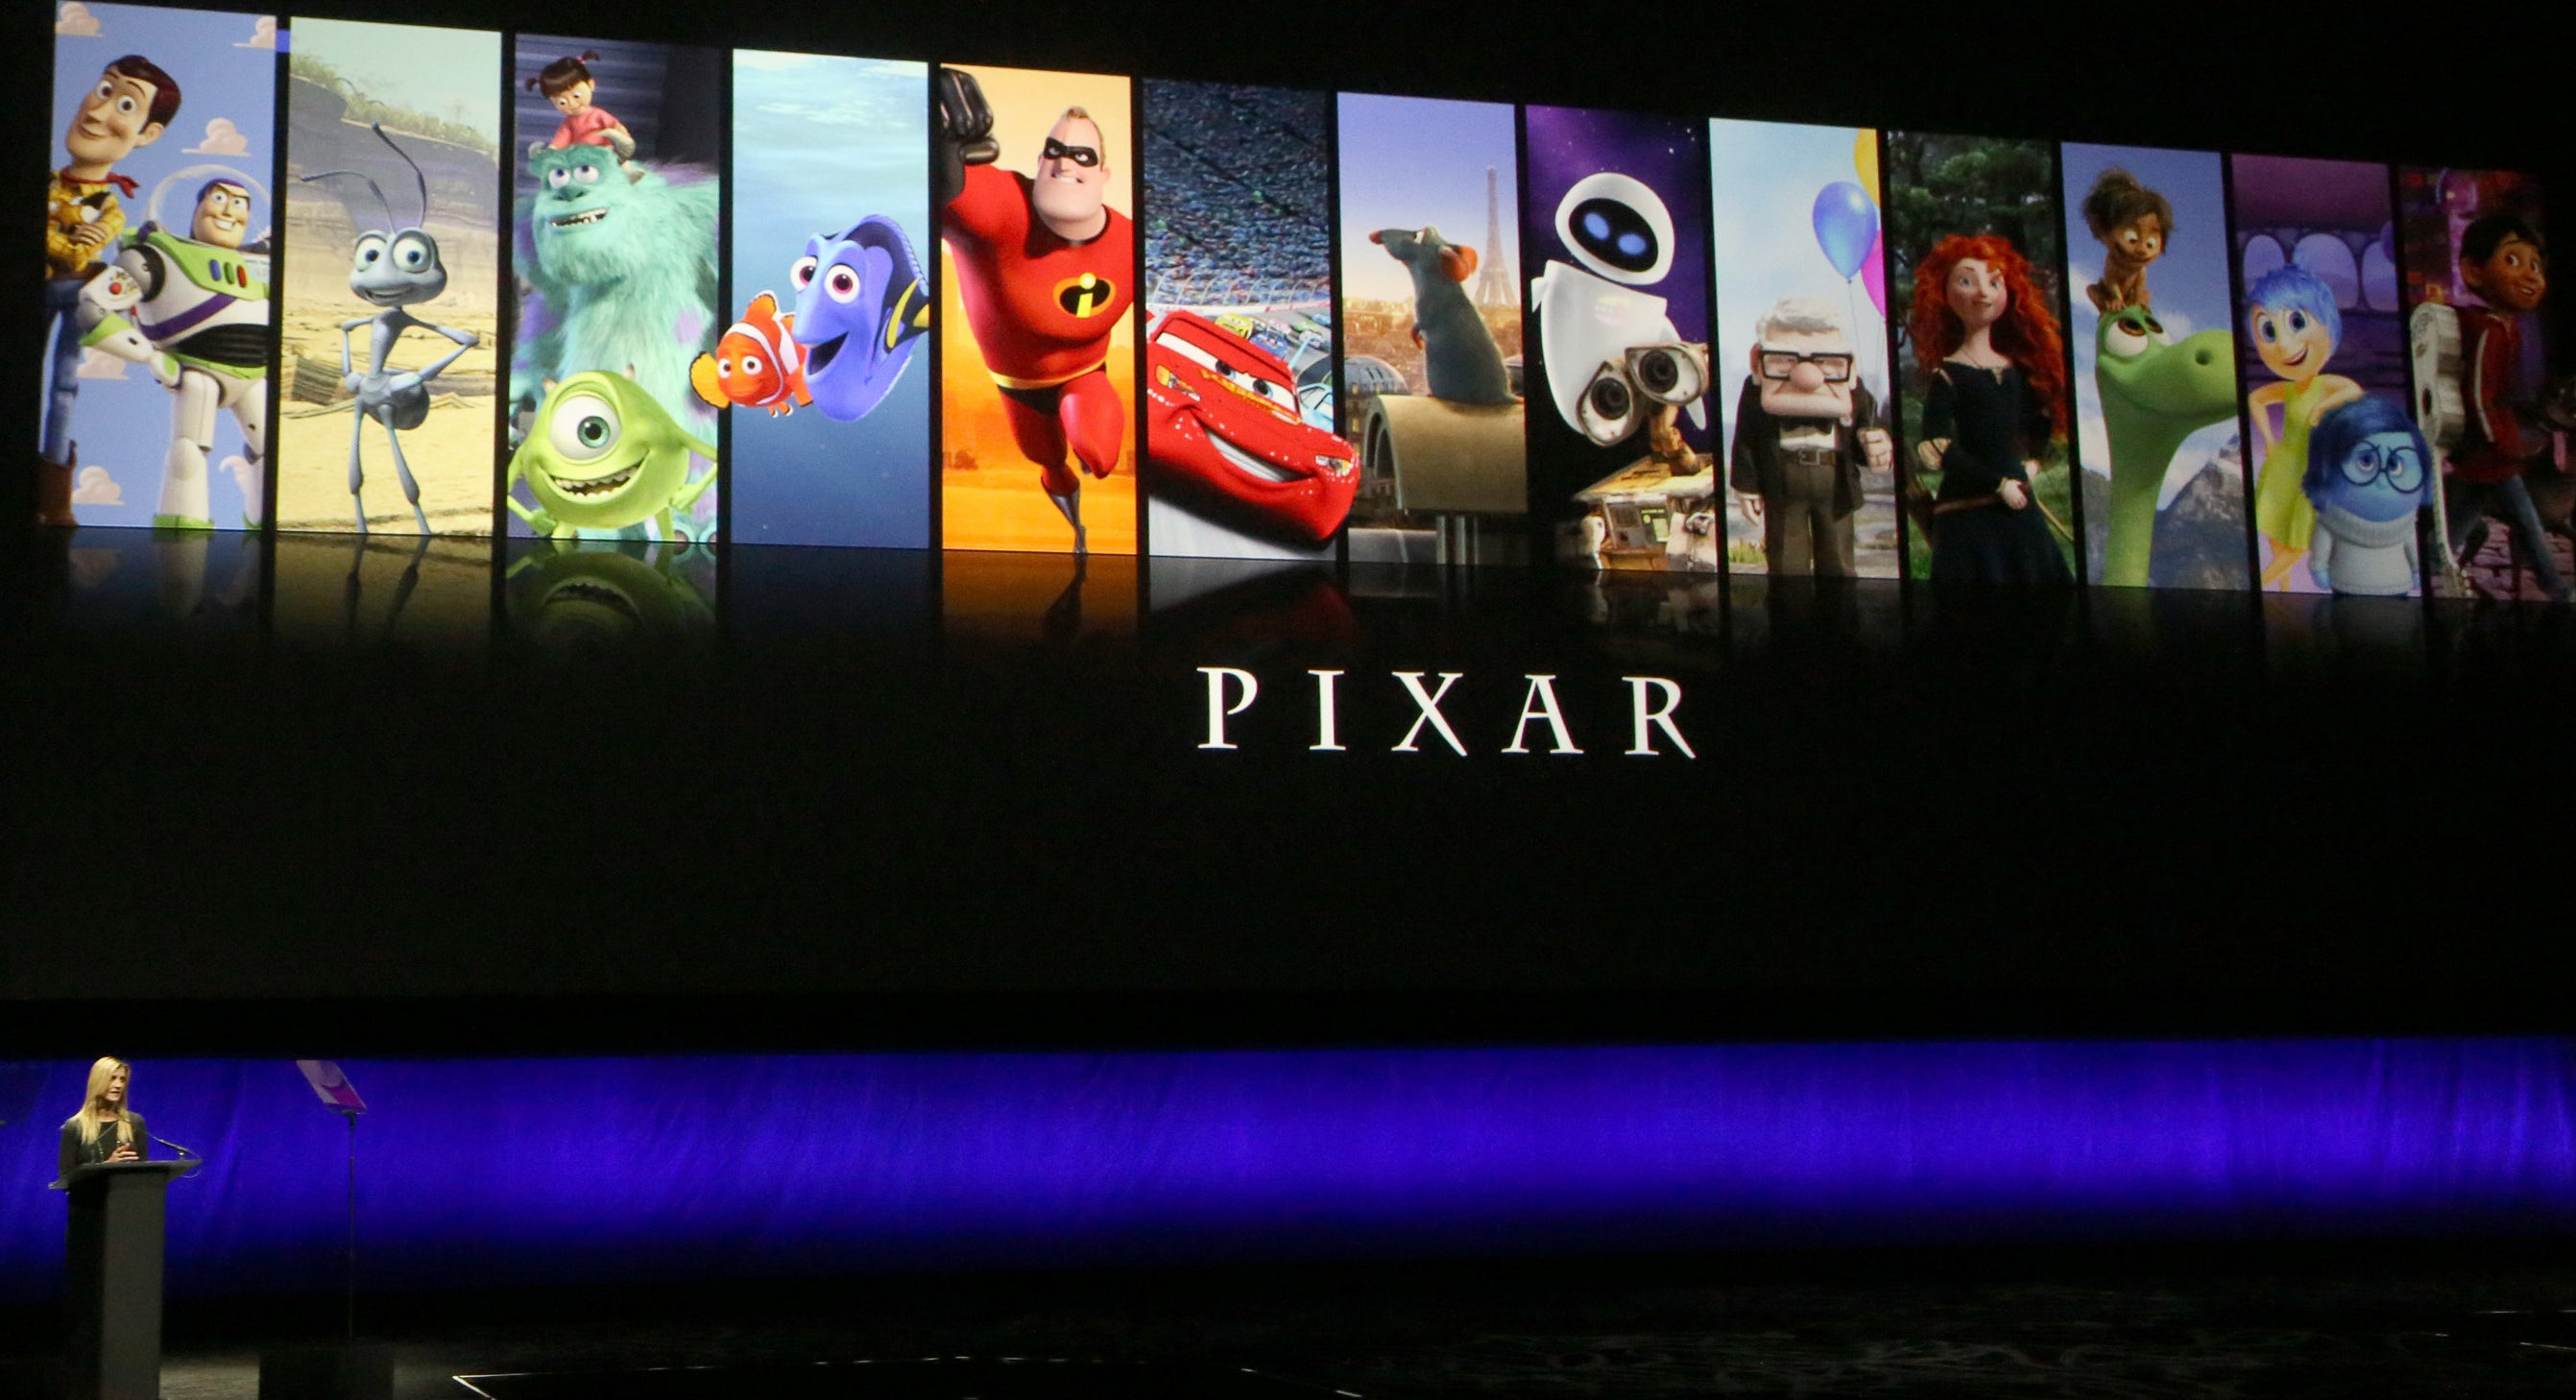 A presentation showing the title 'Pixar' with vertical banners of different Pixar movies, including Toy Story, Monsters Inc, and the Incredibles